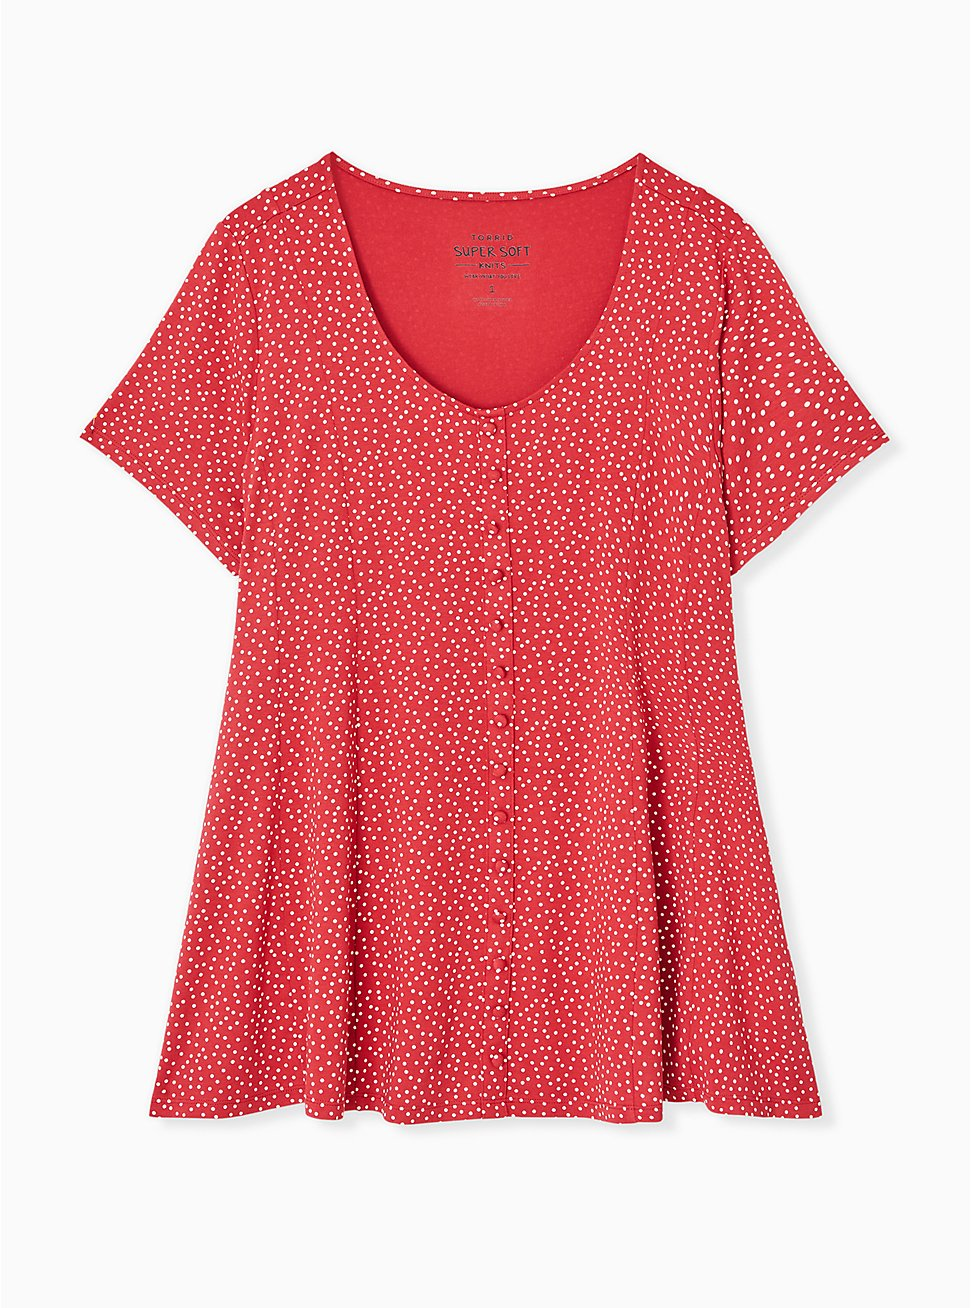 Plus Size Super Soft Red Ditsy Dots Button Fit & Flare Top, DOT - RED, hi-res